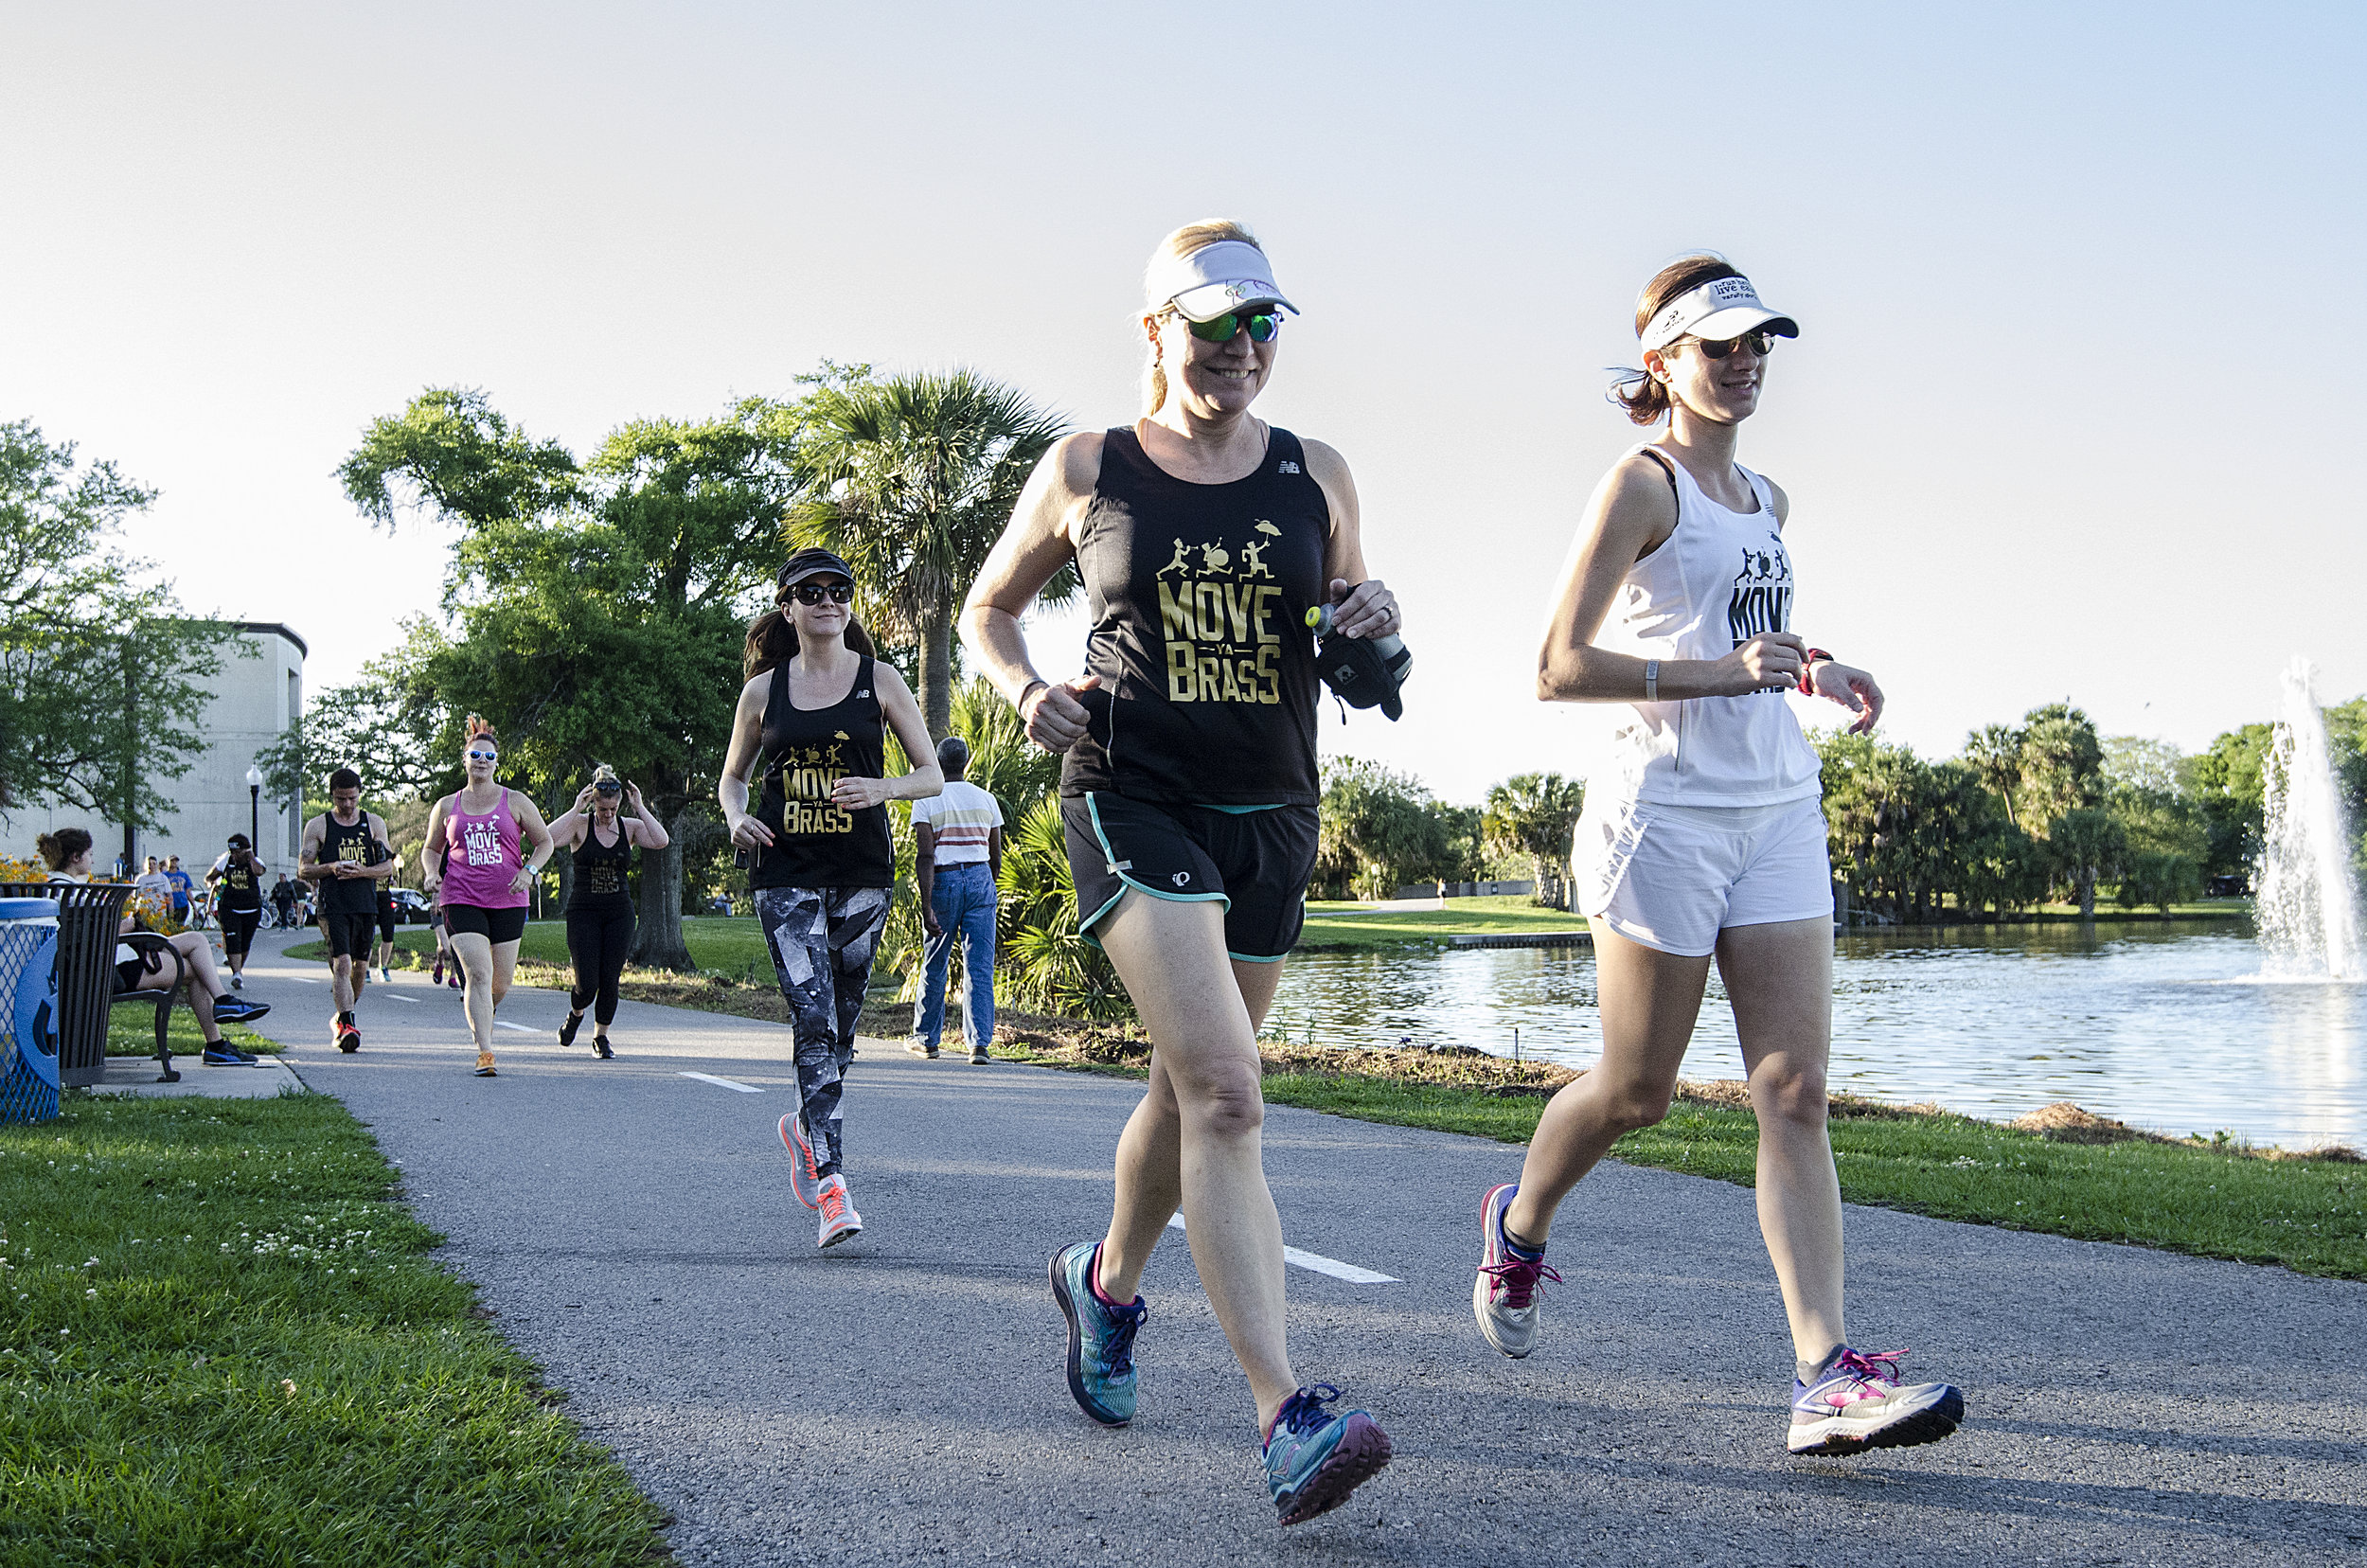 by  Greg Roques   As a long-time runner, I am honestly shocked by the number of running clubs active in New Orleans. I have lived in cities more than five times the size of our metro area, both in geography and population, and was unable to find a quarter of the running communities we have here… and they call us the Big Easy.  A good running club can be the most powerful weapon in your race-training artillery—it's also a great way to make friends and explore areas you wouldn't otherwise venture through. While a quiet solo run can be cathartic, having a group that relies on you to show up makes it less likely you will skip a workout, regardless of the weather, time of day, or your mood.  No matter your schedule or skill level, New Orleans has a crew for you. Several organizations around the city shared details with  Where Y'at  about their groups to help you find your perfect fit.